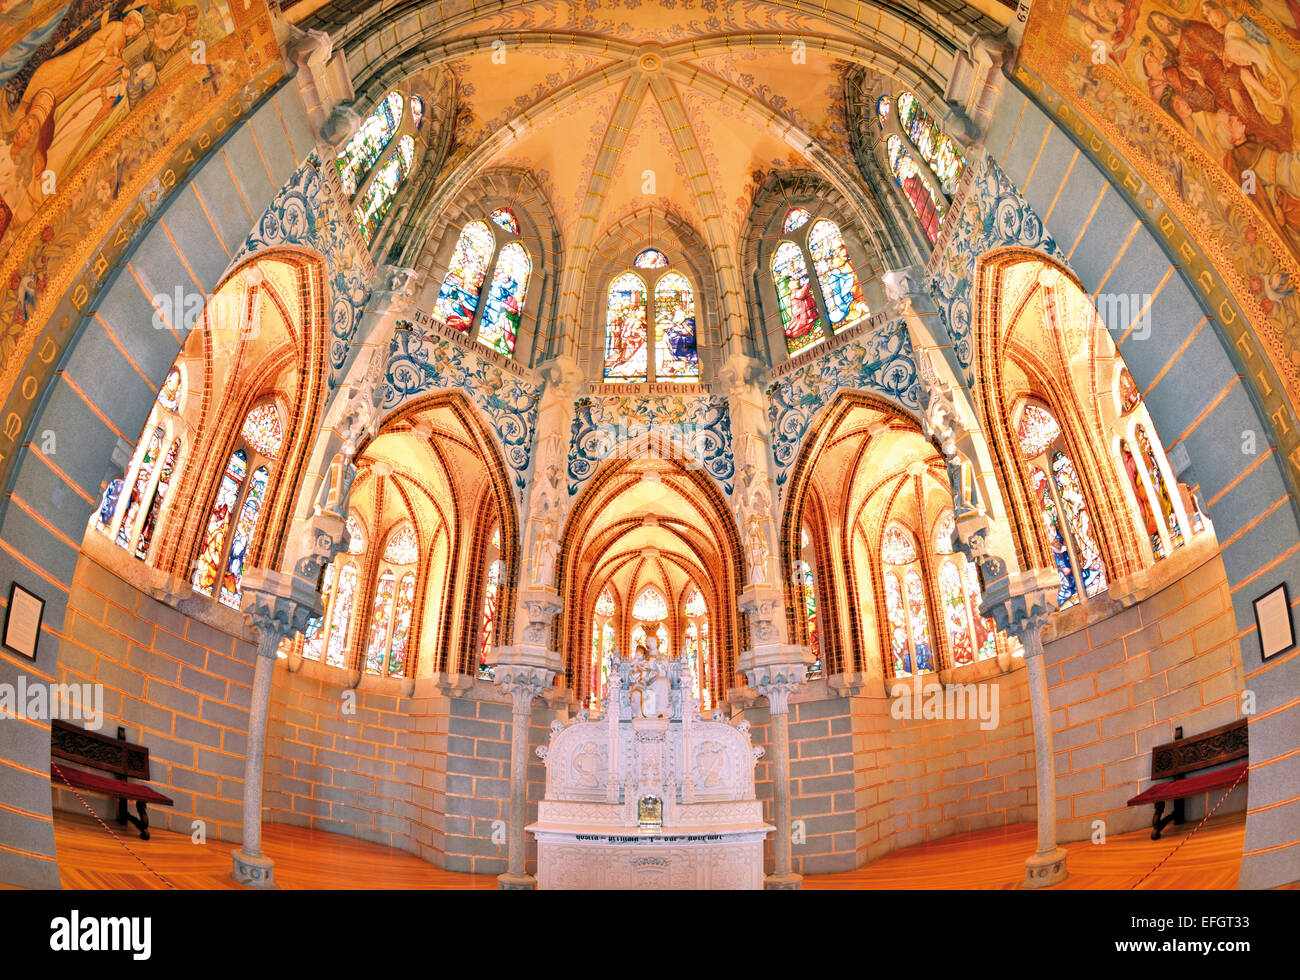 Spain, Castilla-Leon: Interior of the chapel in Gaudí´s Palacio Episcopal in Astorga - Stock Image